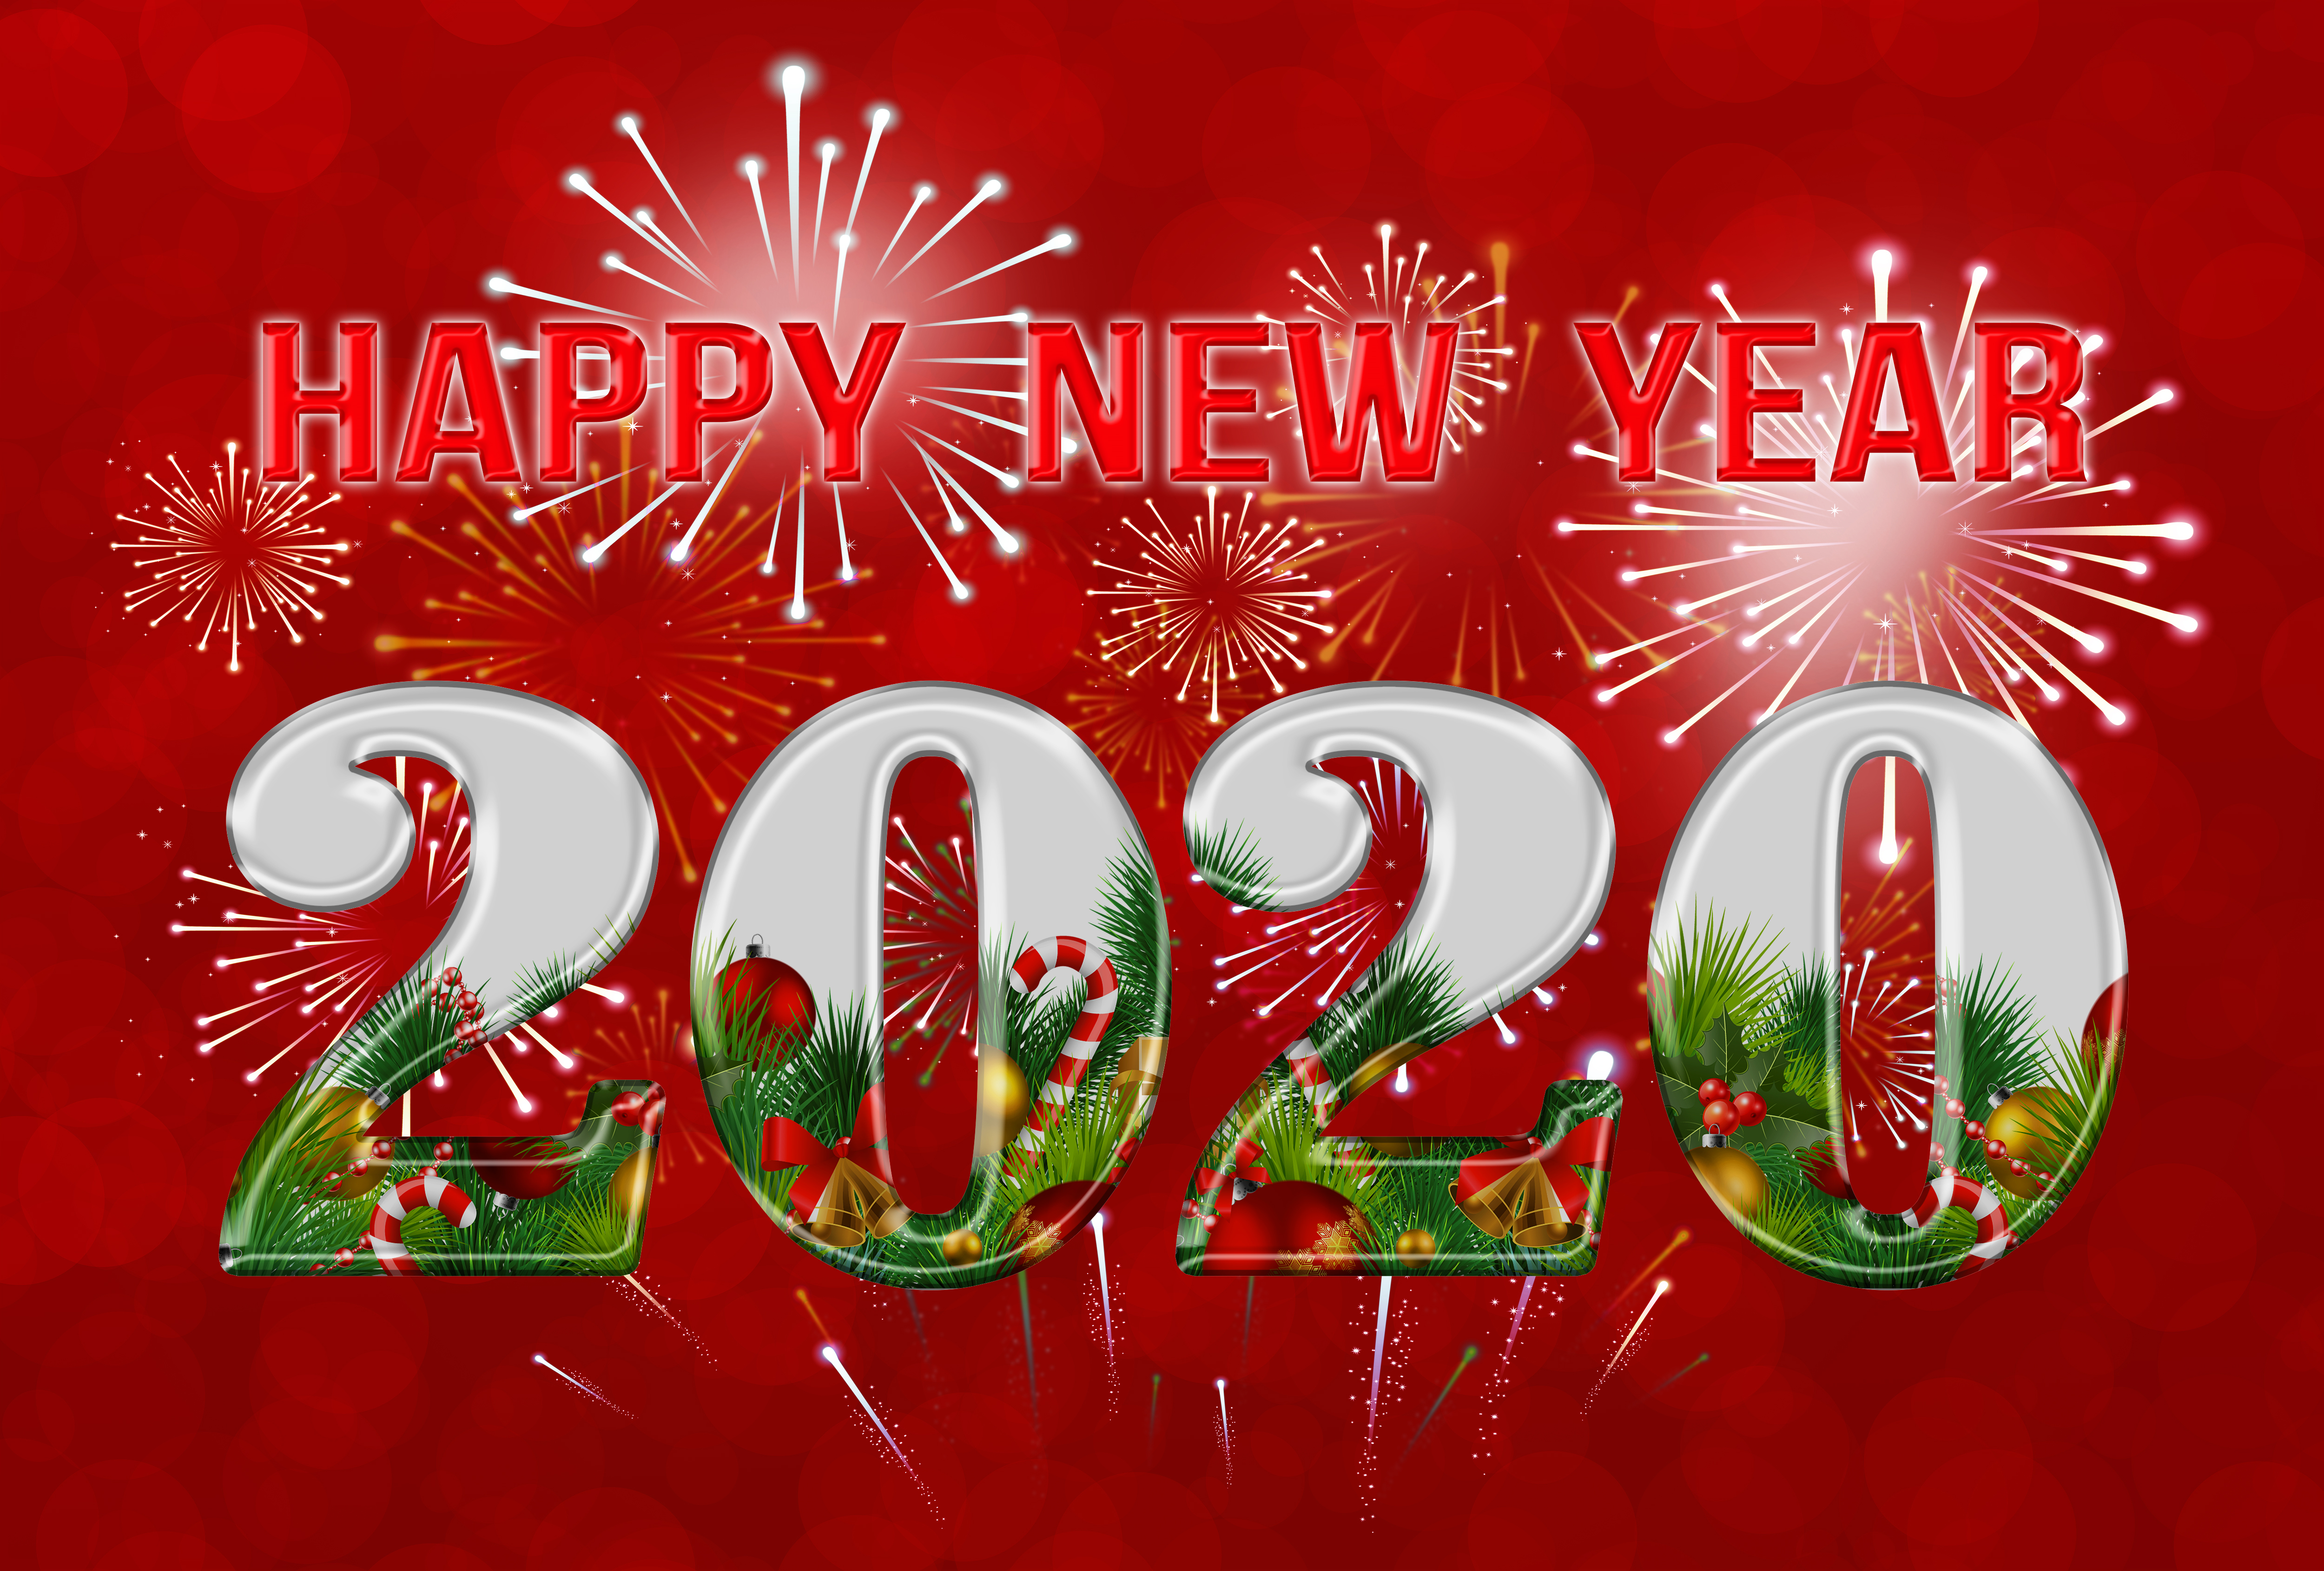 Happy New Year 2020 Red Backgrounds